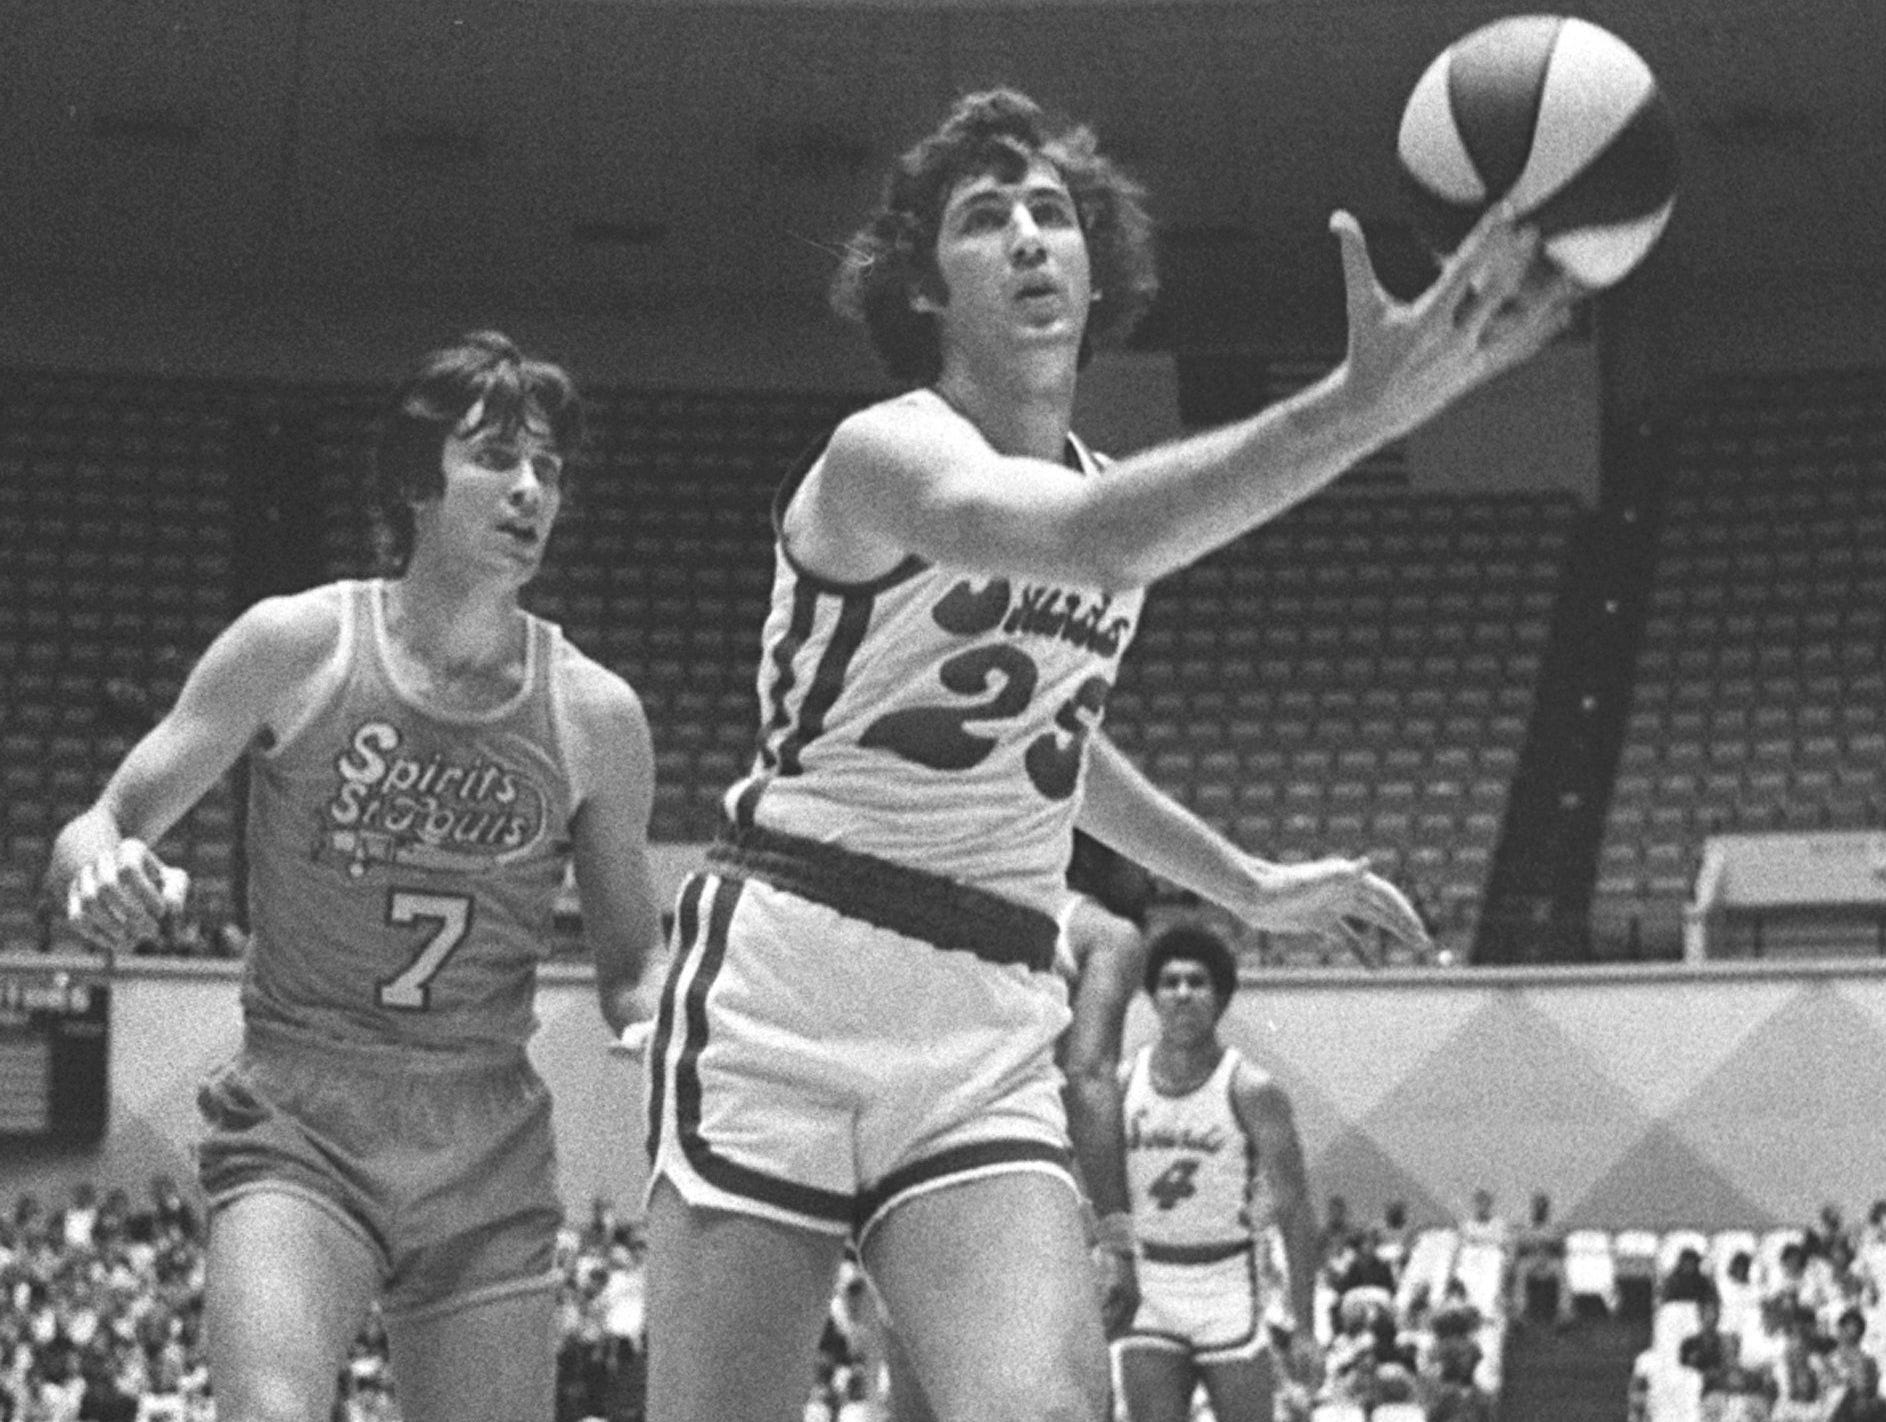 Tom Owens of the Memphis Sounds stretches to snare a pass on 15 Jan 1975 as St. Louis' Terry Driscoll closes in. The Sounds trailed 45 to 42 at halftime and lost 104 to 99 before 2,248 at the Mid-South Coliseum.